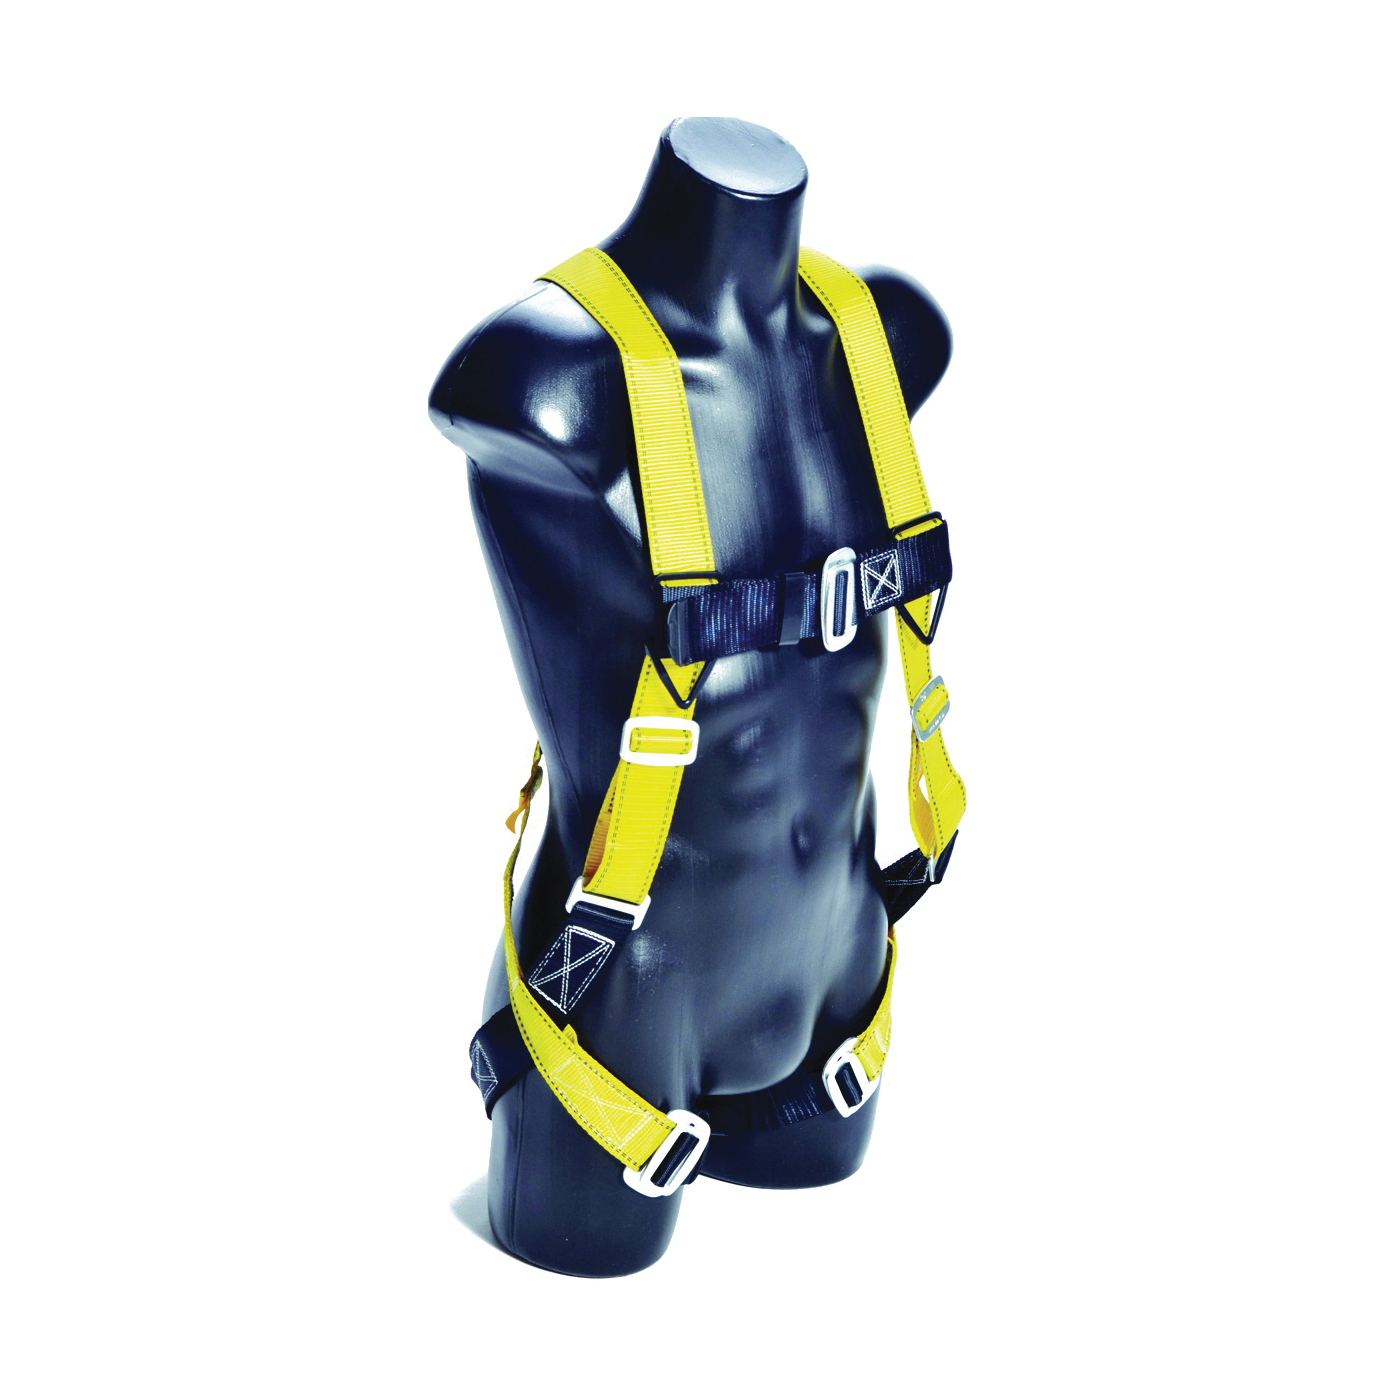 Picture of Qualcraft 01700 HUV Harness, L/S, 100 to 250 lb